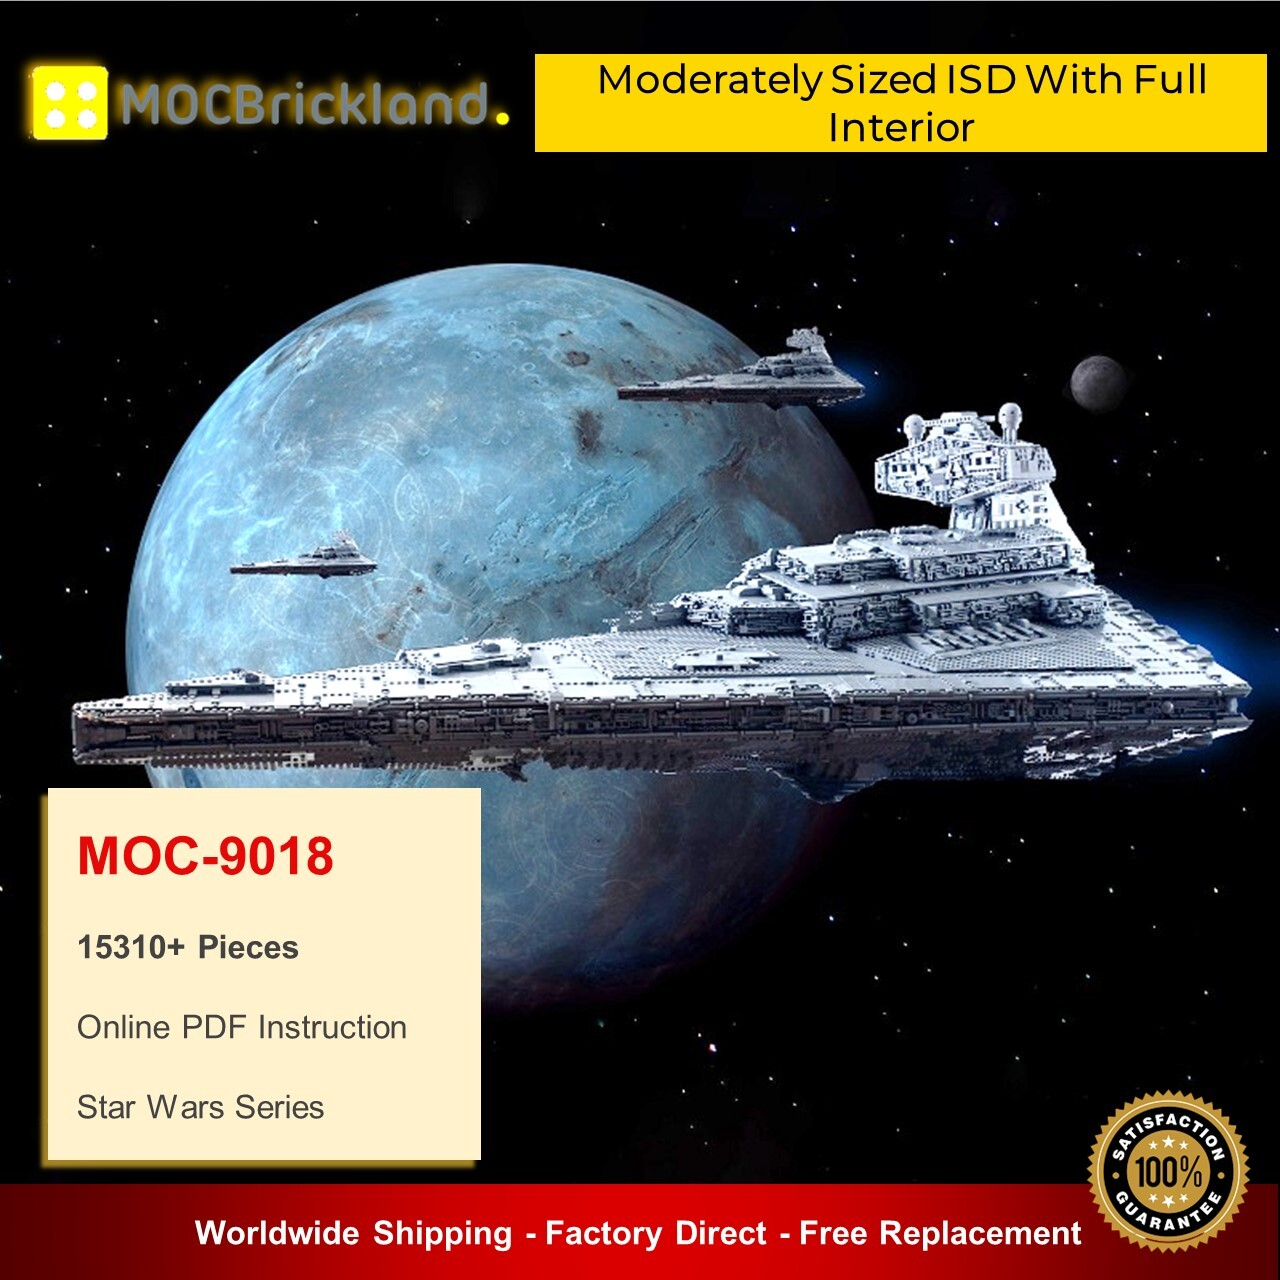 Star wars moc-9018 moderately sized isd with full interior by raskolnikov mocbrickland